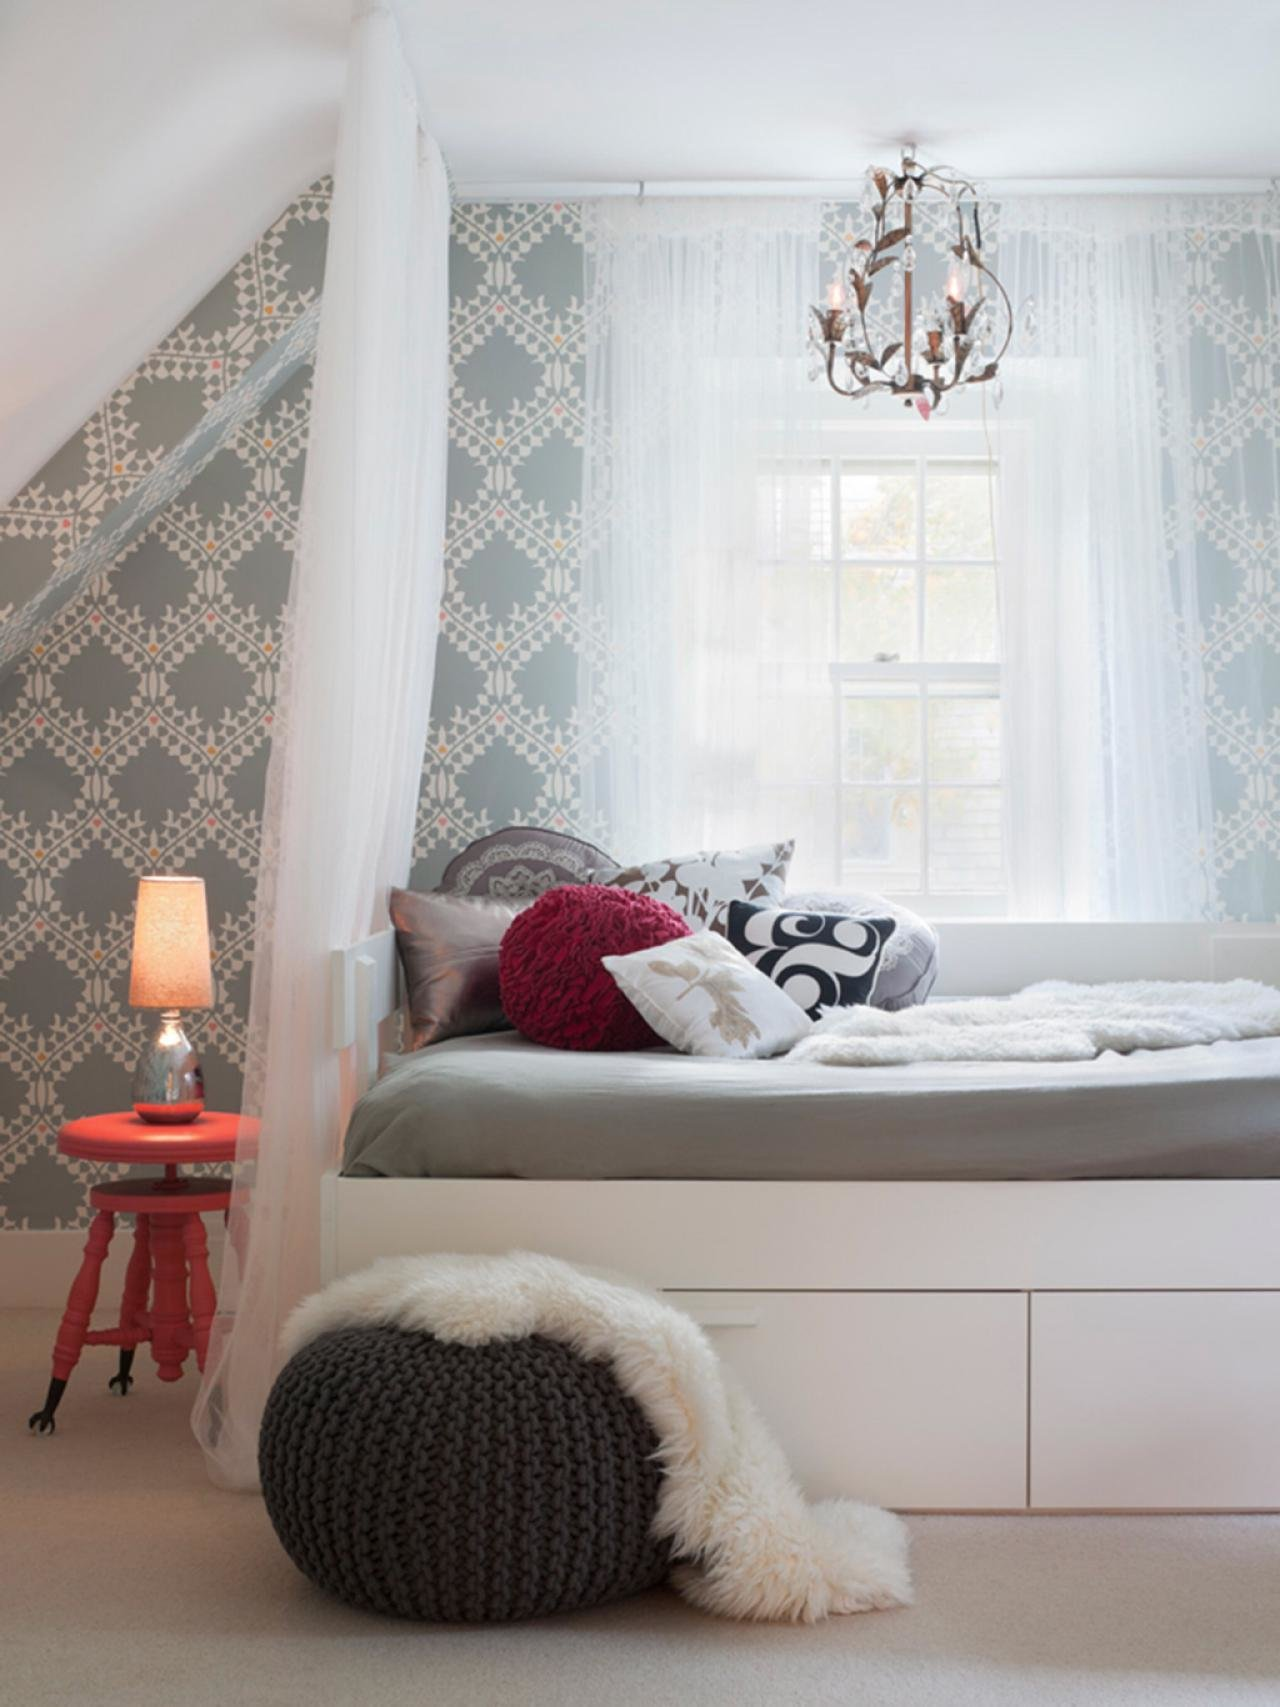 Best Sophisticated T**N Bedroom Decorating Ideas Hgtv S With Pictures